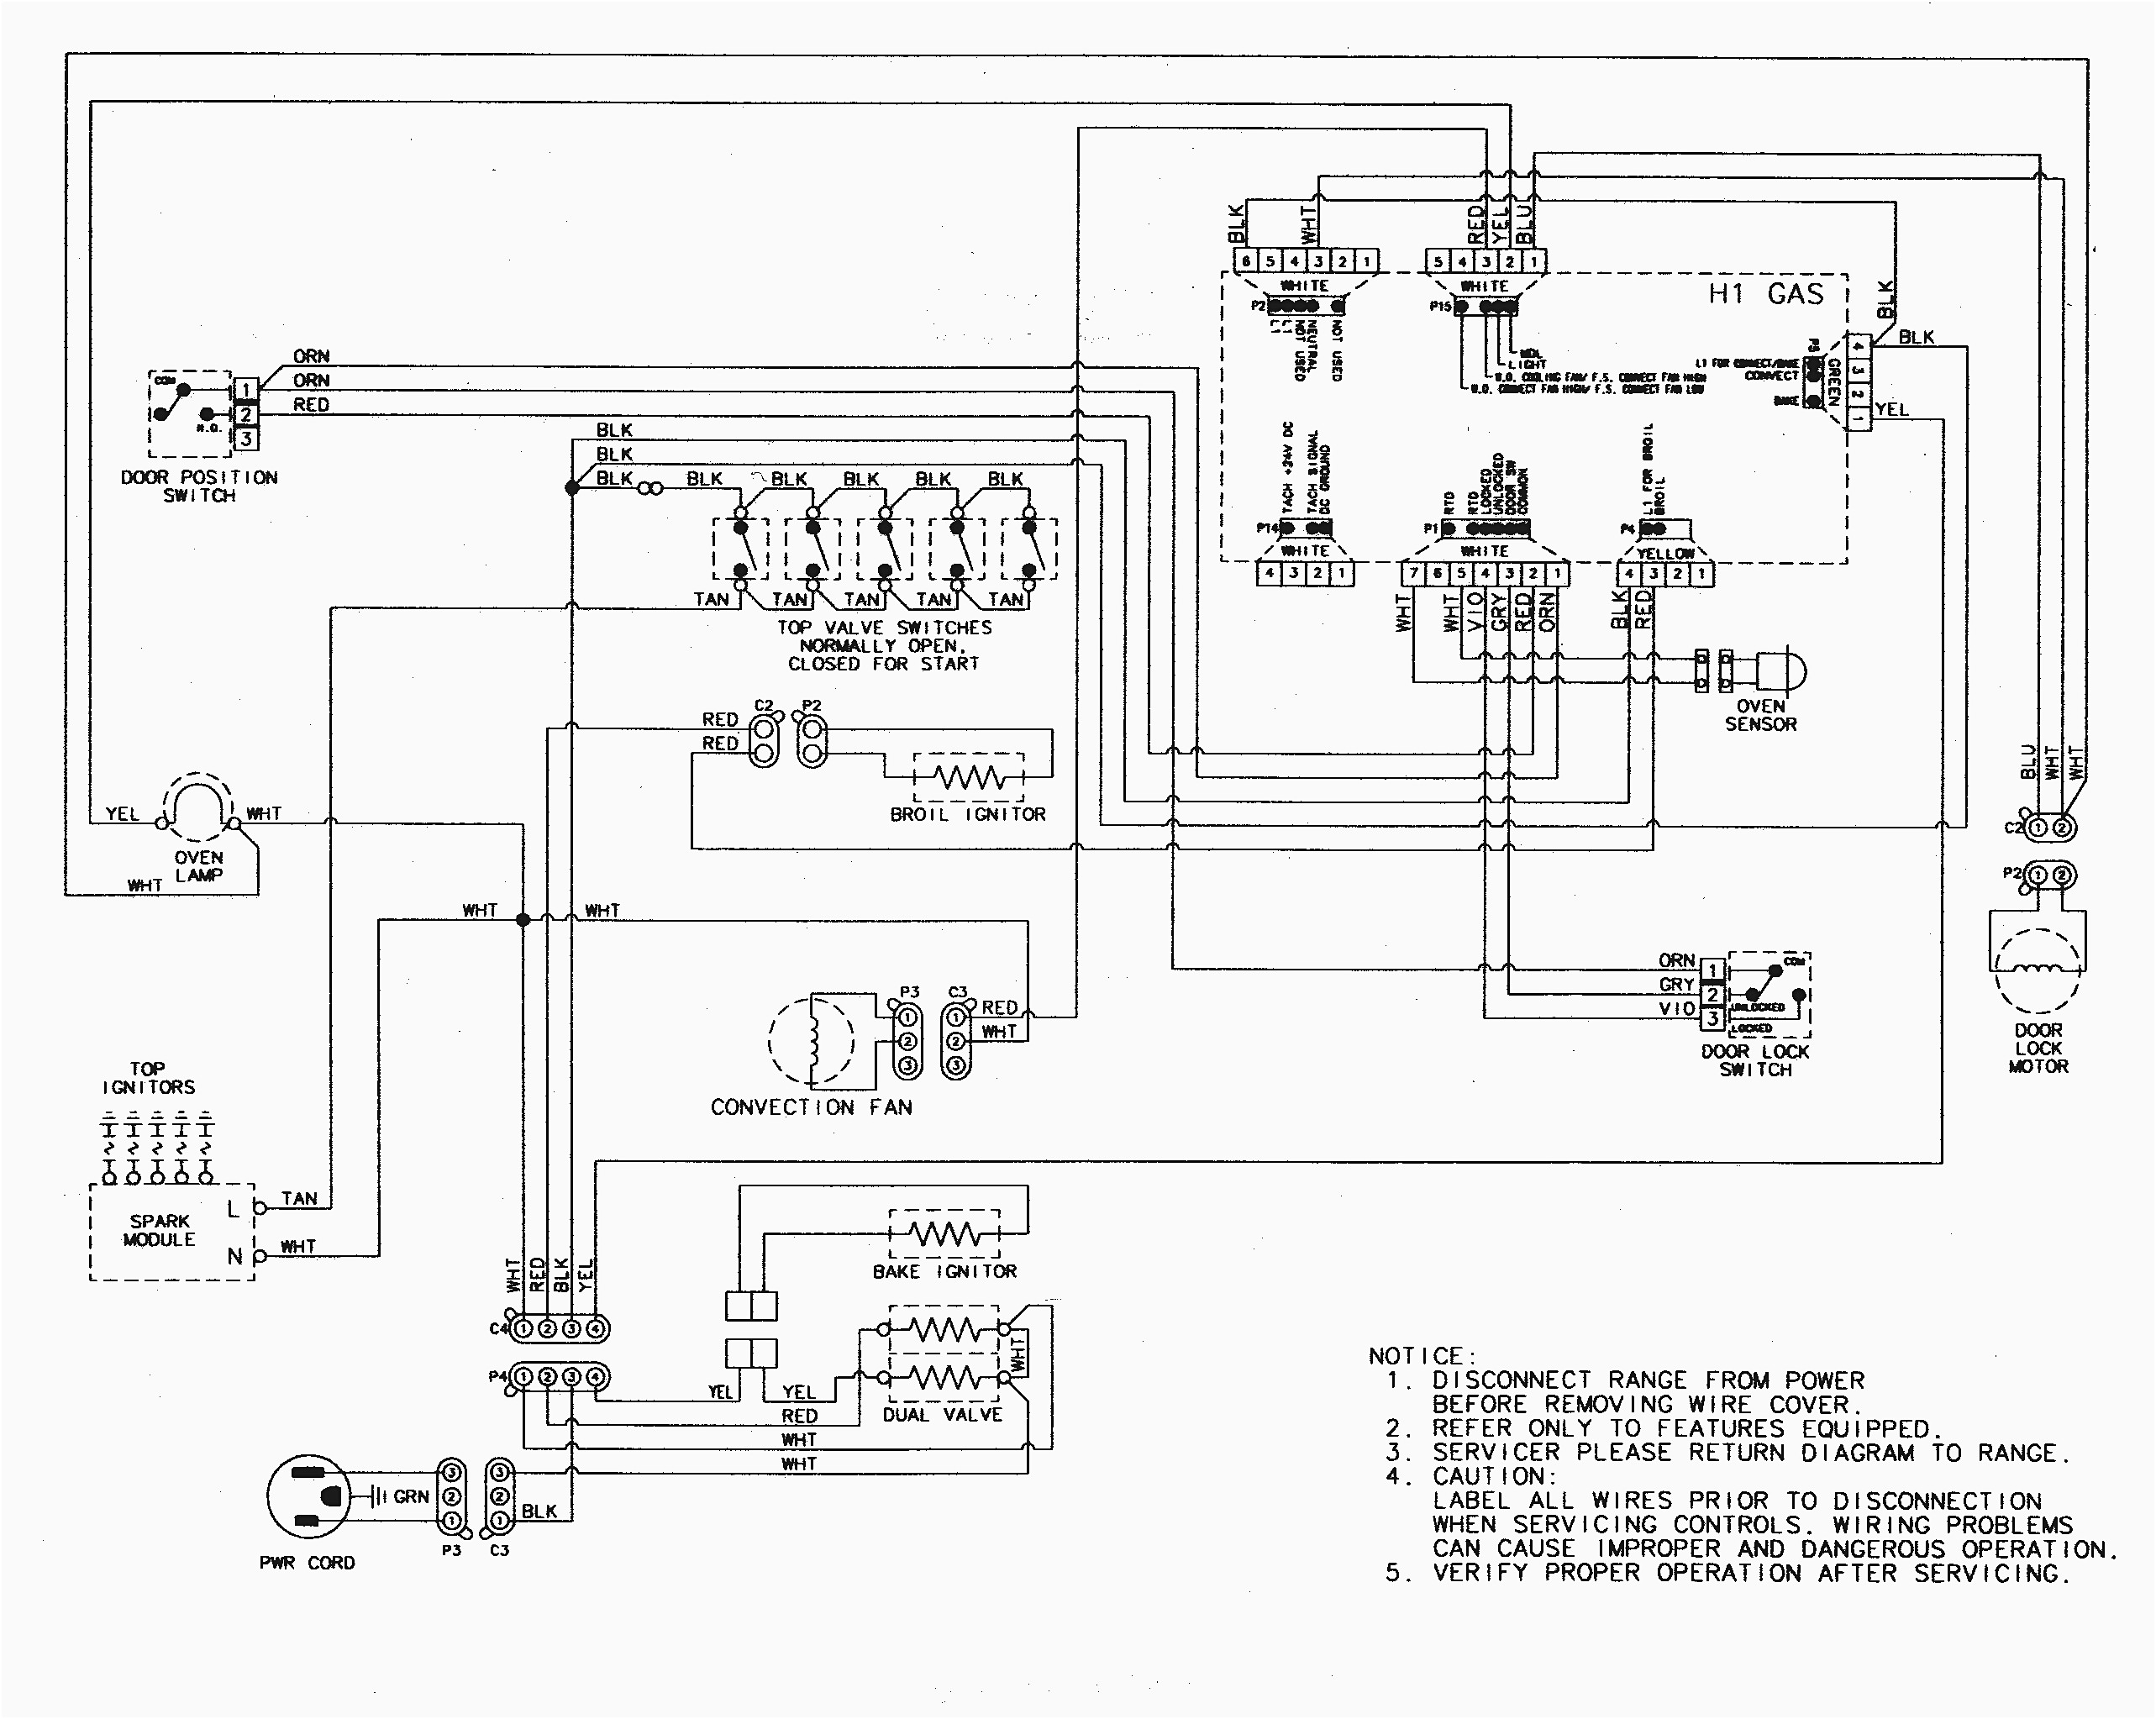 Jkp27w Ge Oven Wiring Diagram - Wiring Diagram M2 on